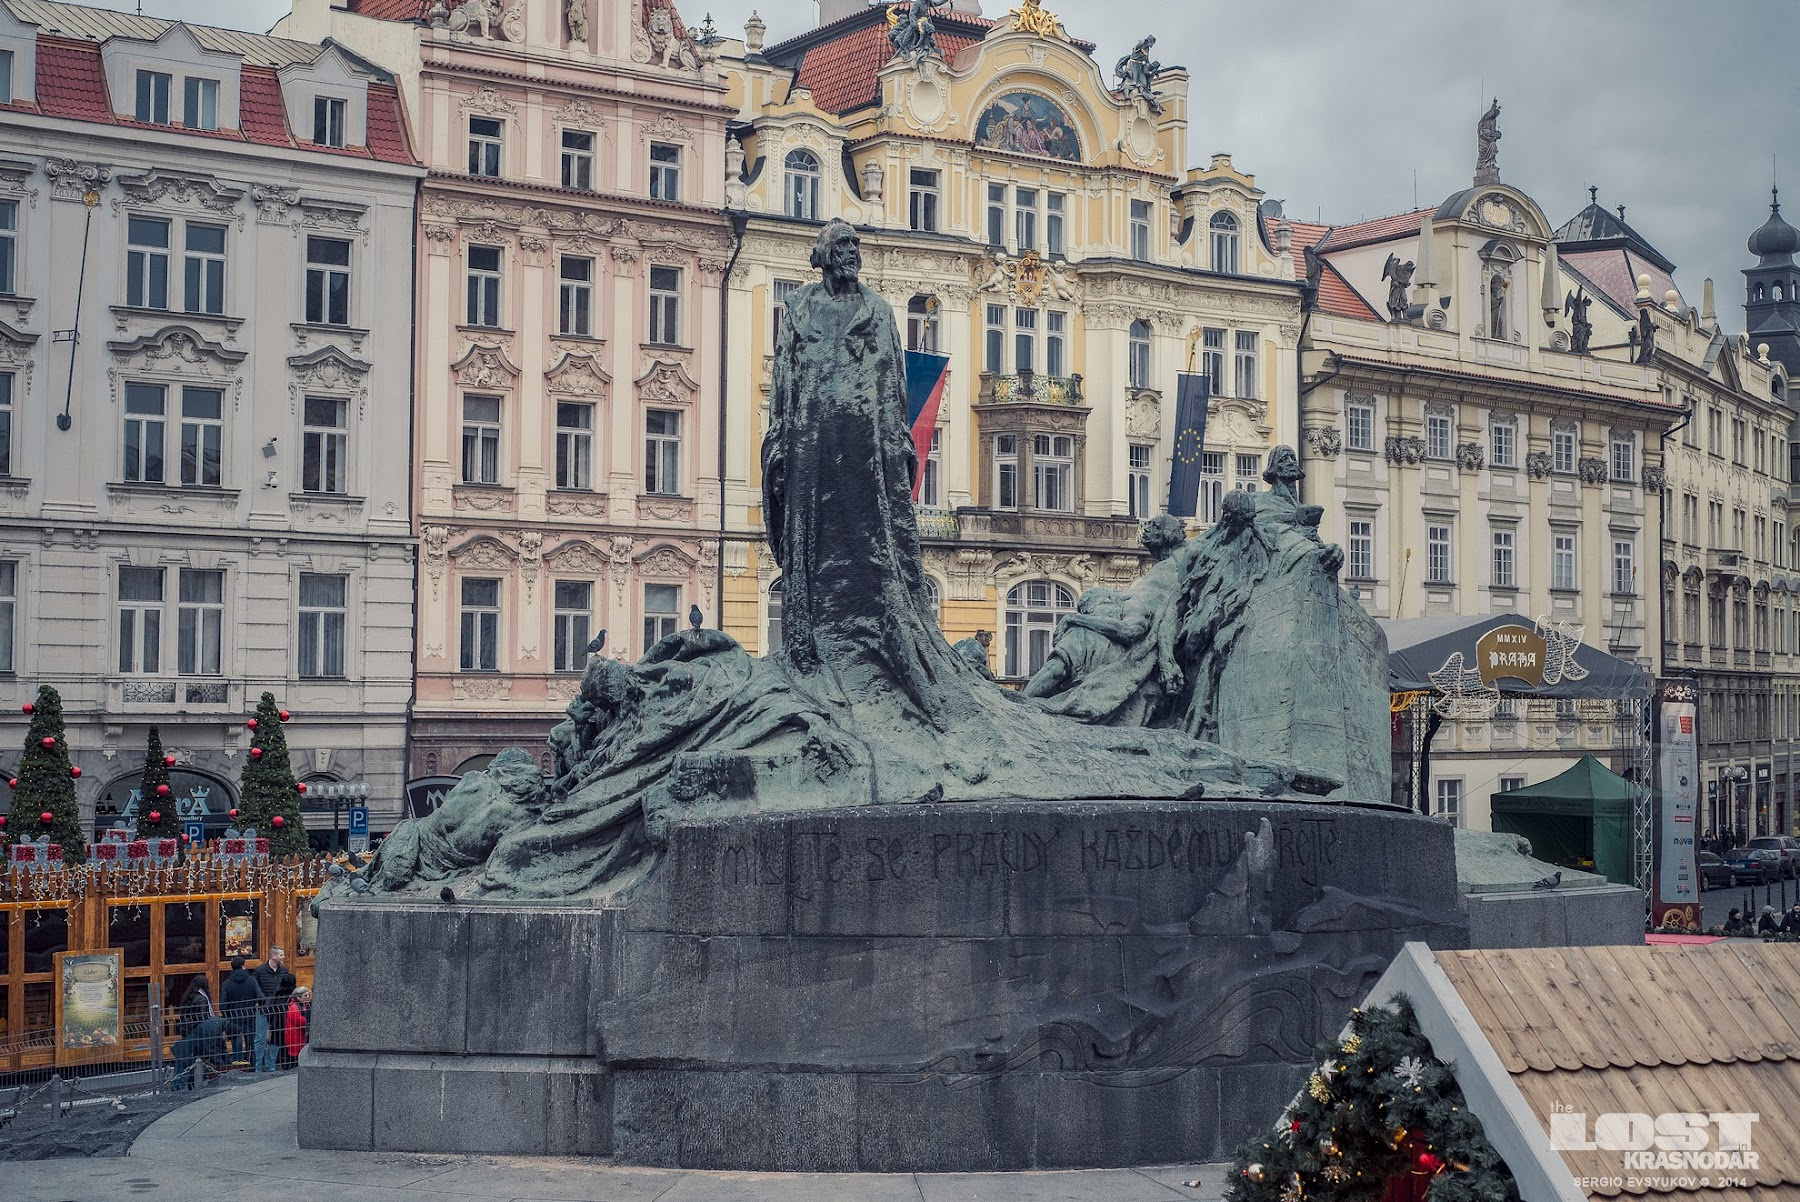 The Memorial in Old Town Square